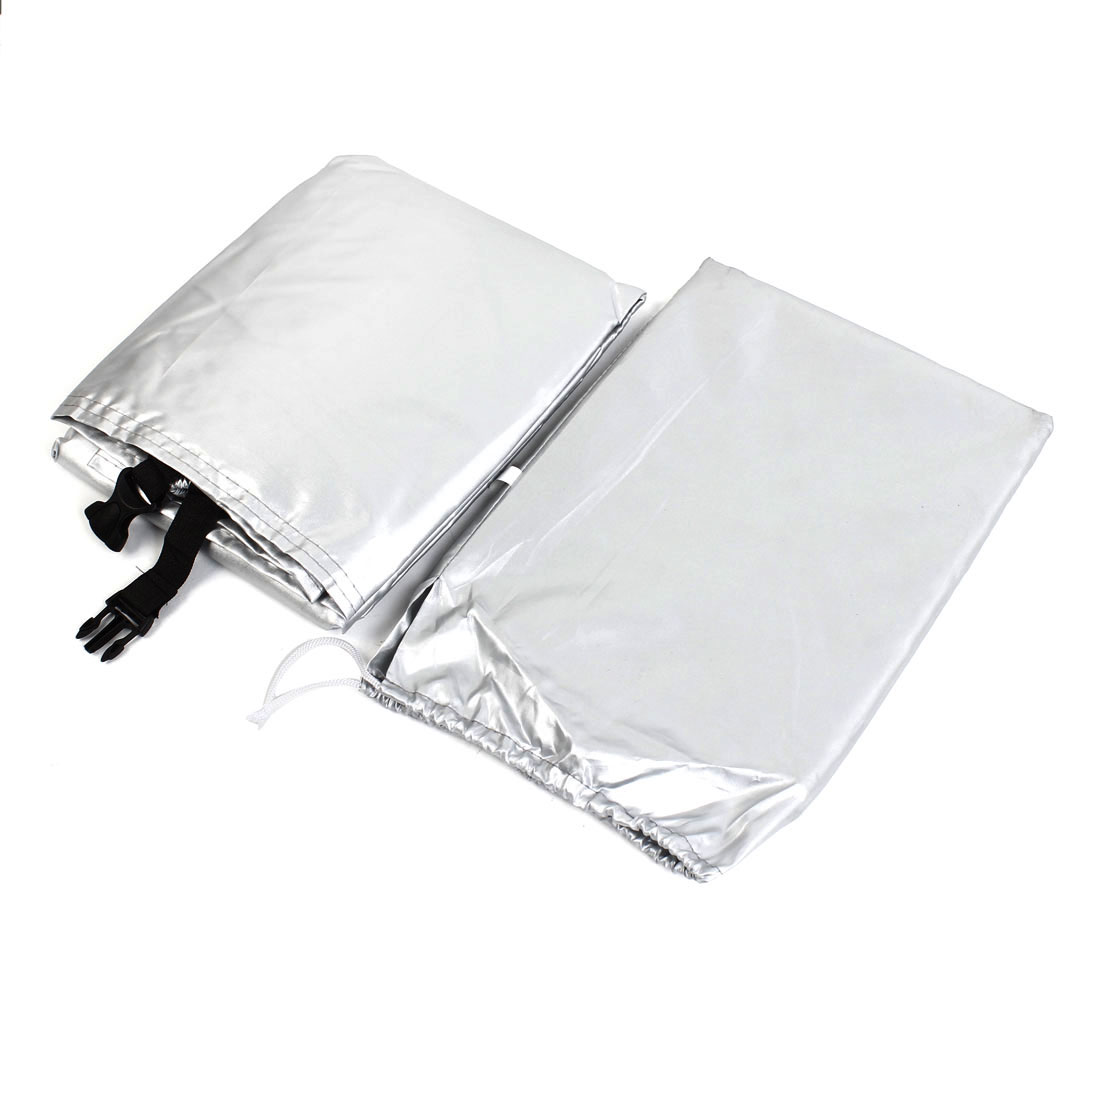 Waterproof Bicycle Bike Cycle Cover Outdoor Rain Resistant Protector Silver Tone Size S 170cmx60cmx85cm